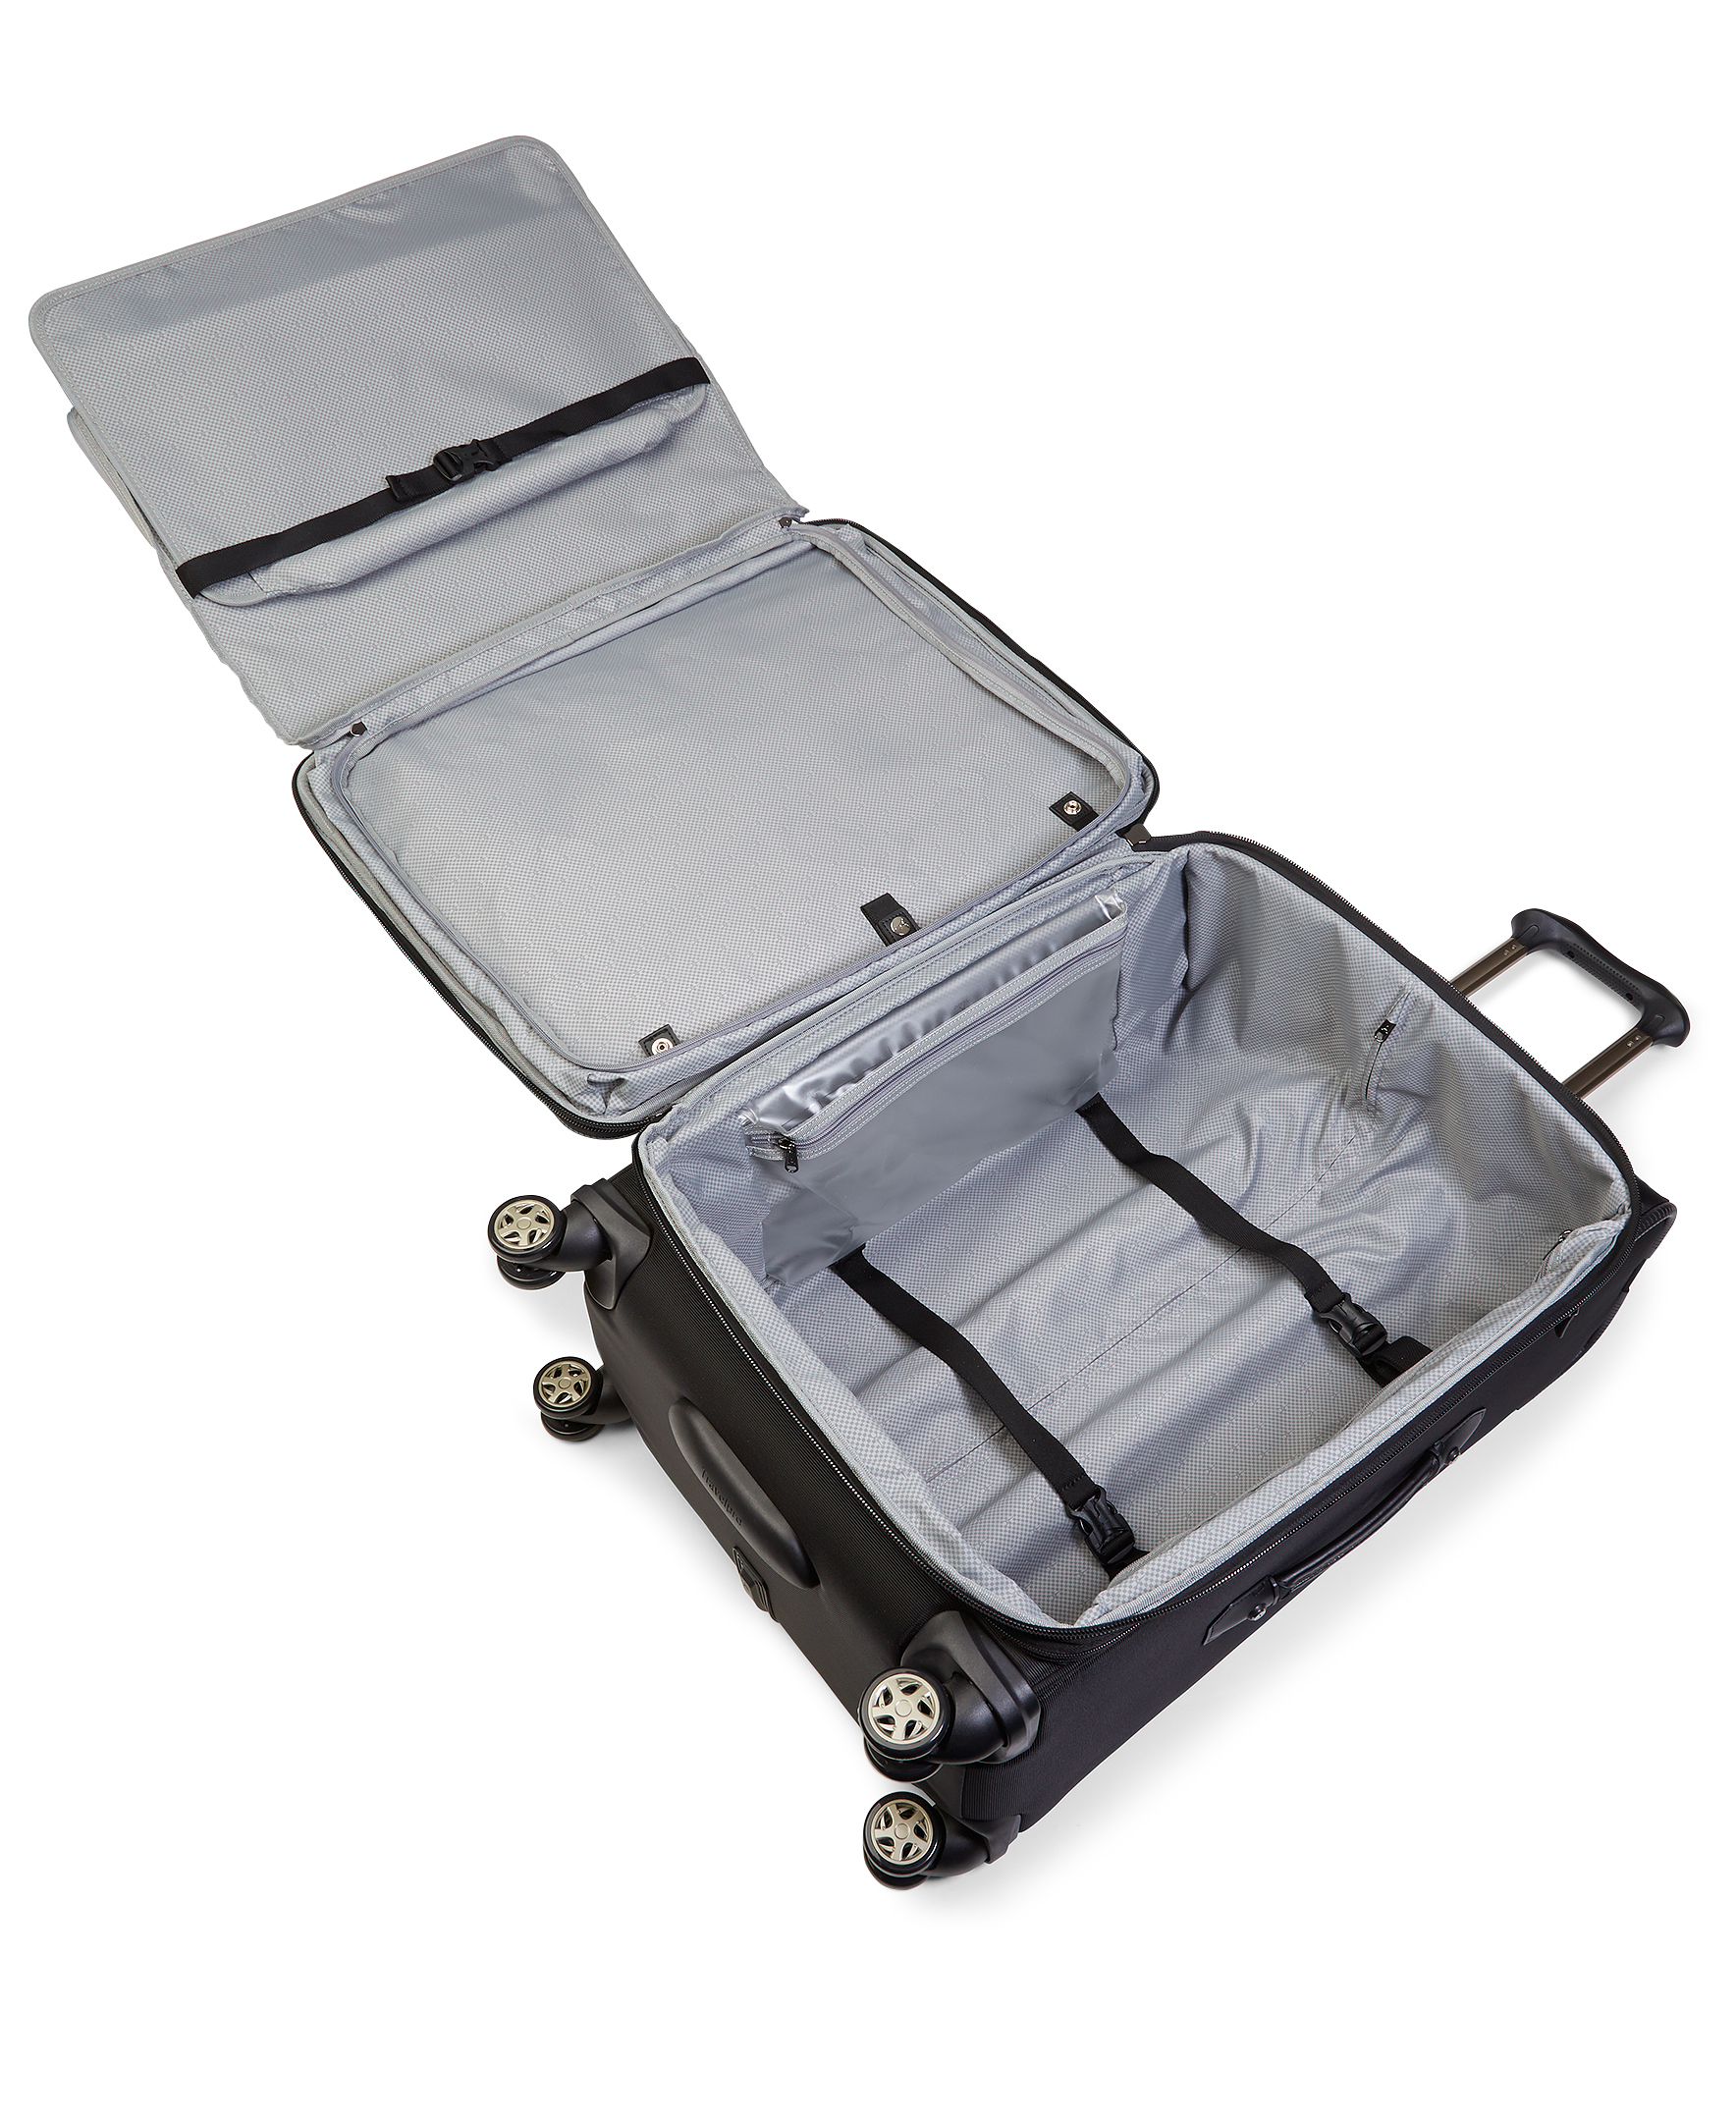 Crew 10 Archives Travelpro 174 Luggage Blog Travelpro